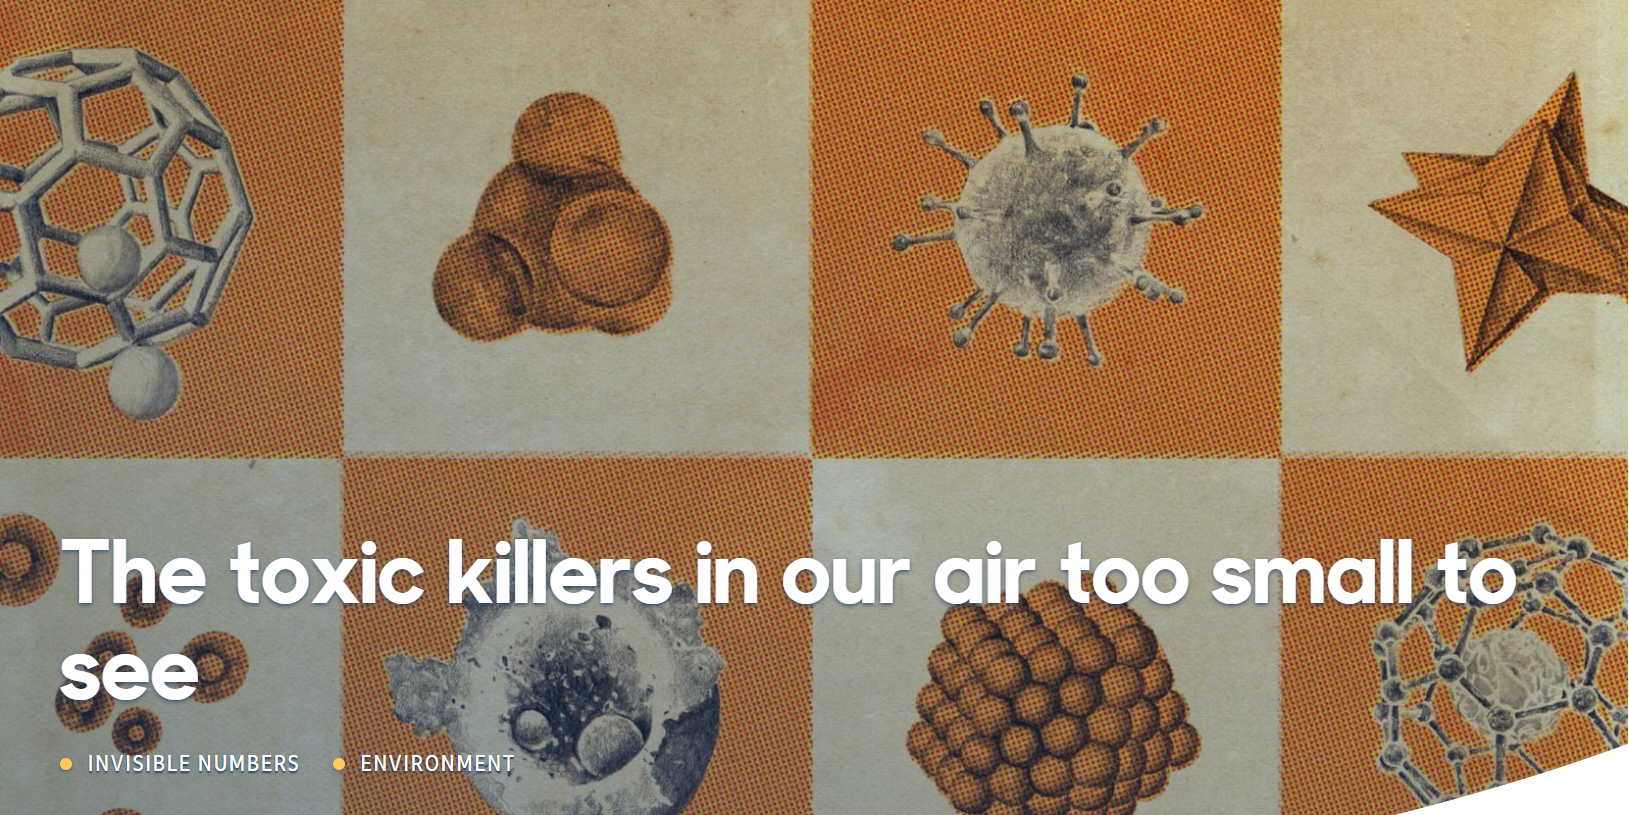 BBC: The toxic killers in our air too small to see